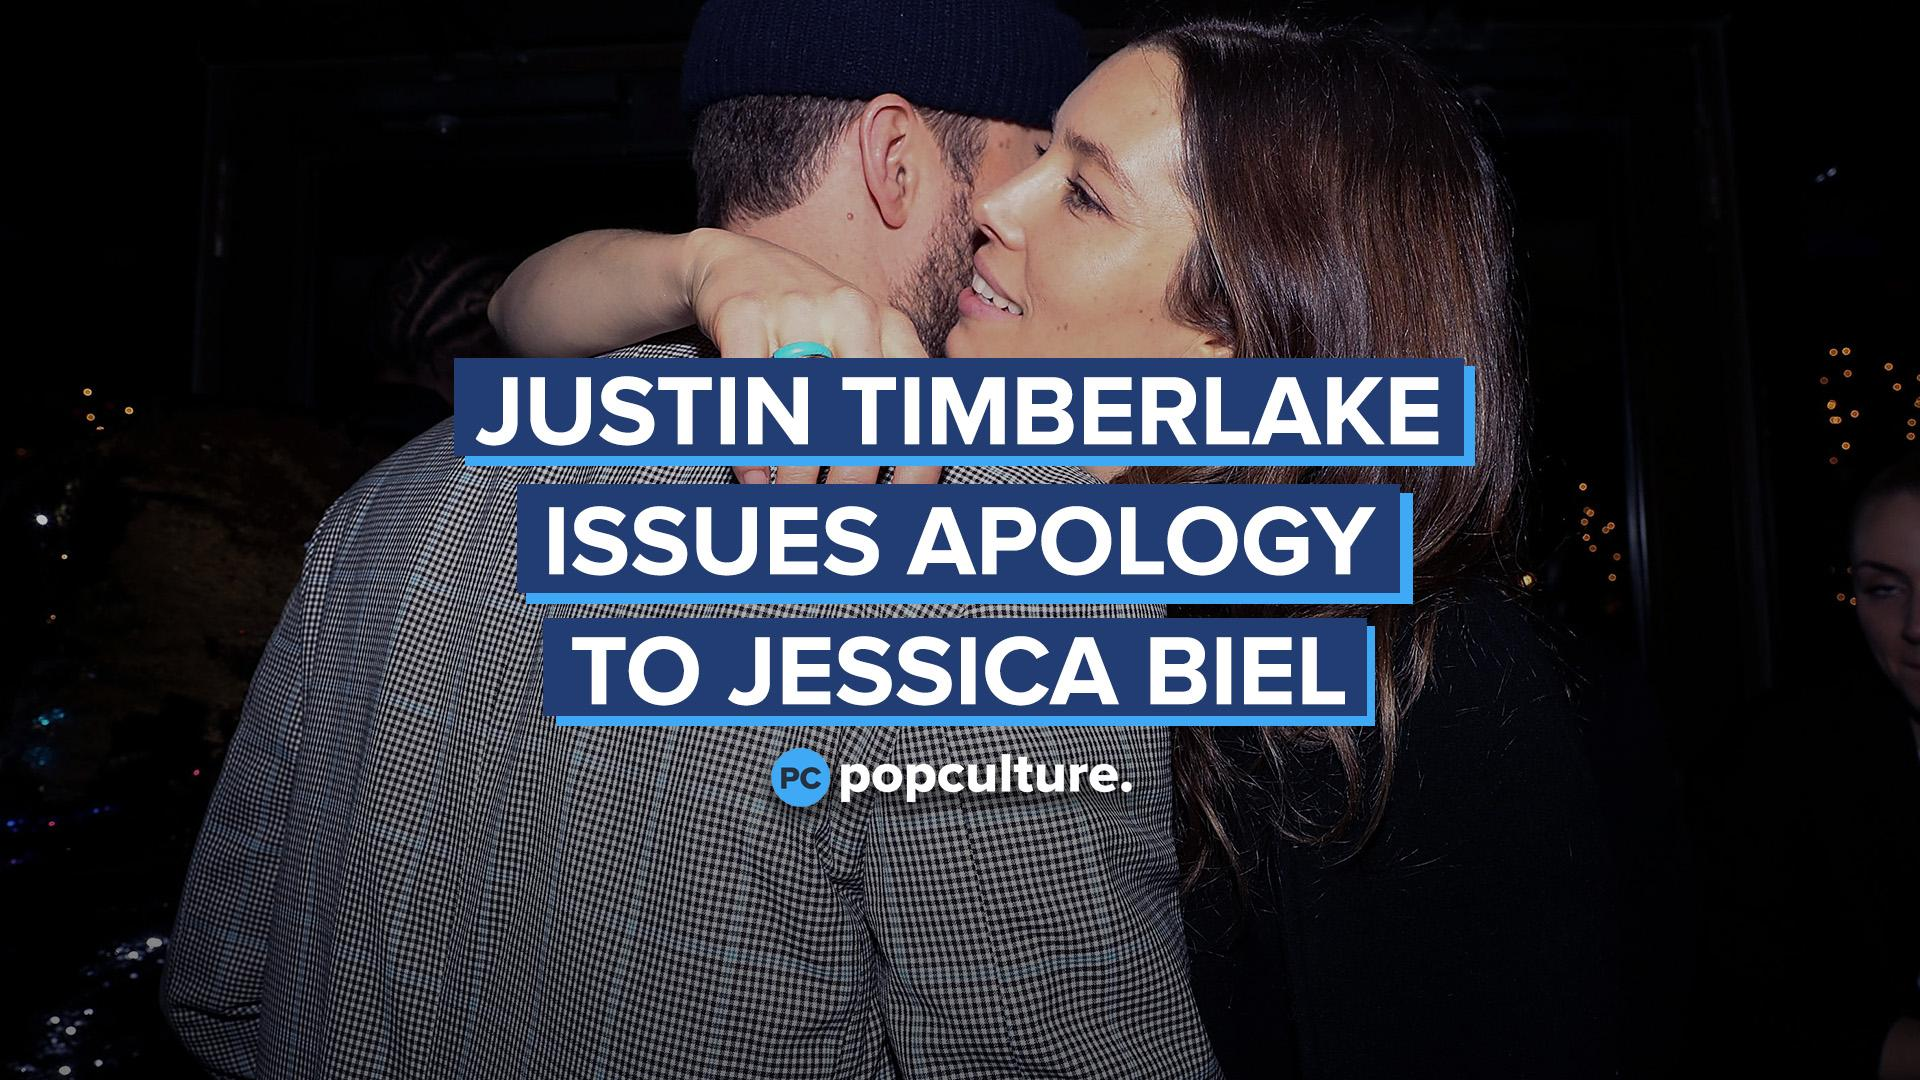 Justin Timberlake Issues Apology to Wife Jessica Biel Following Scandal screen capture